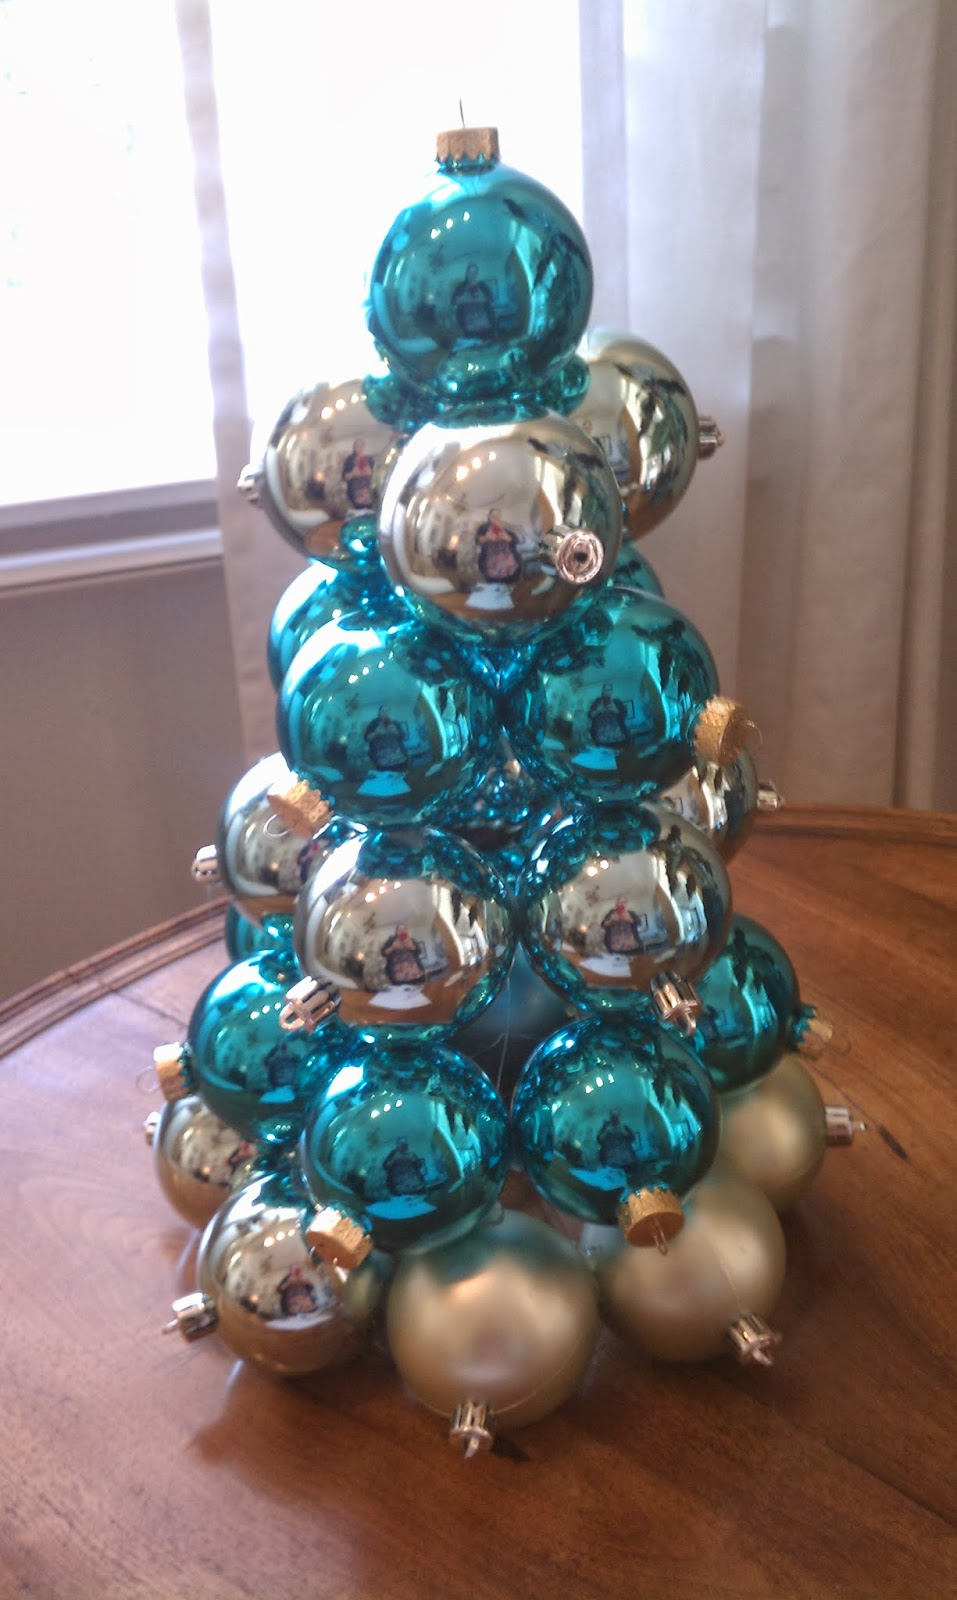 Nadia's DIY Projects: Recycling Old Ornaments - DIY ...